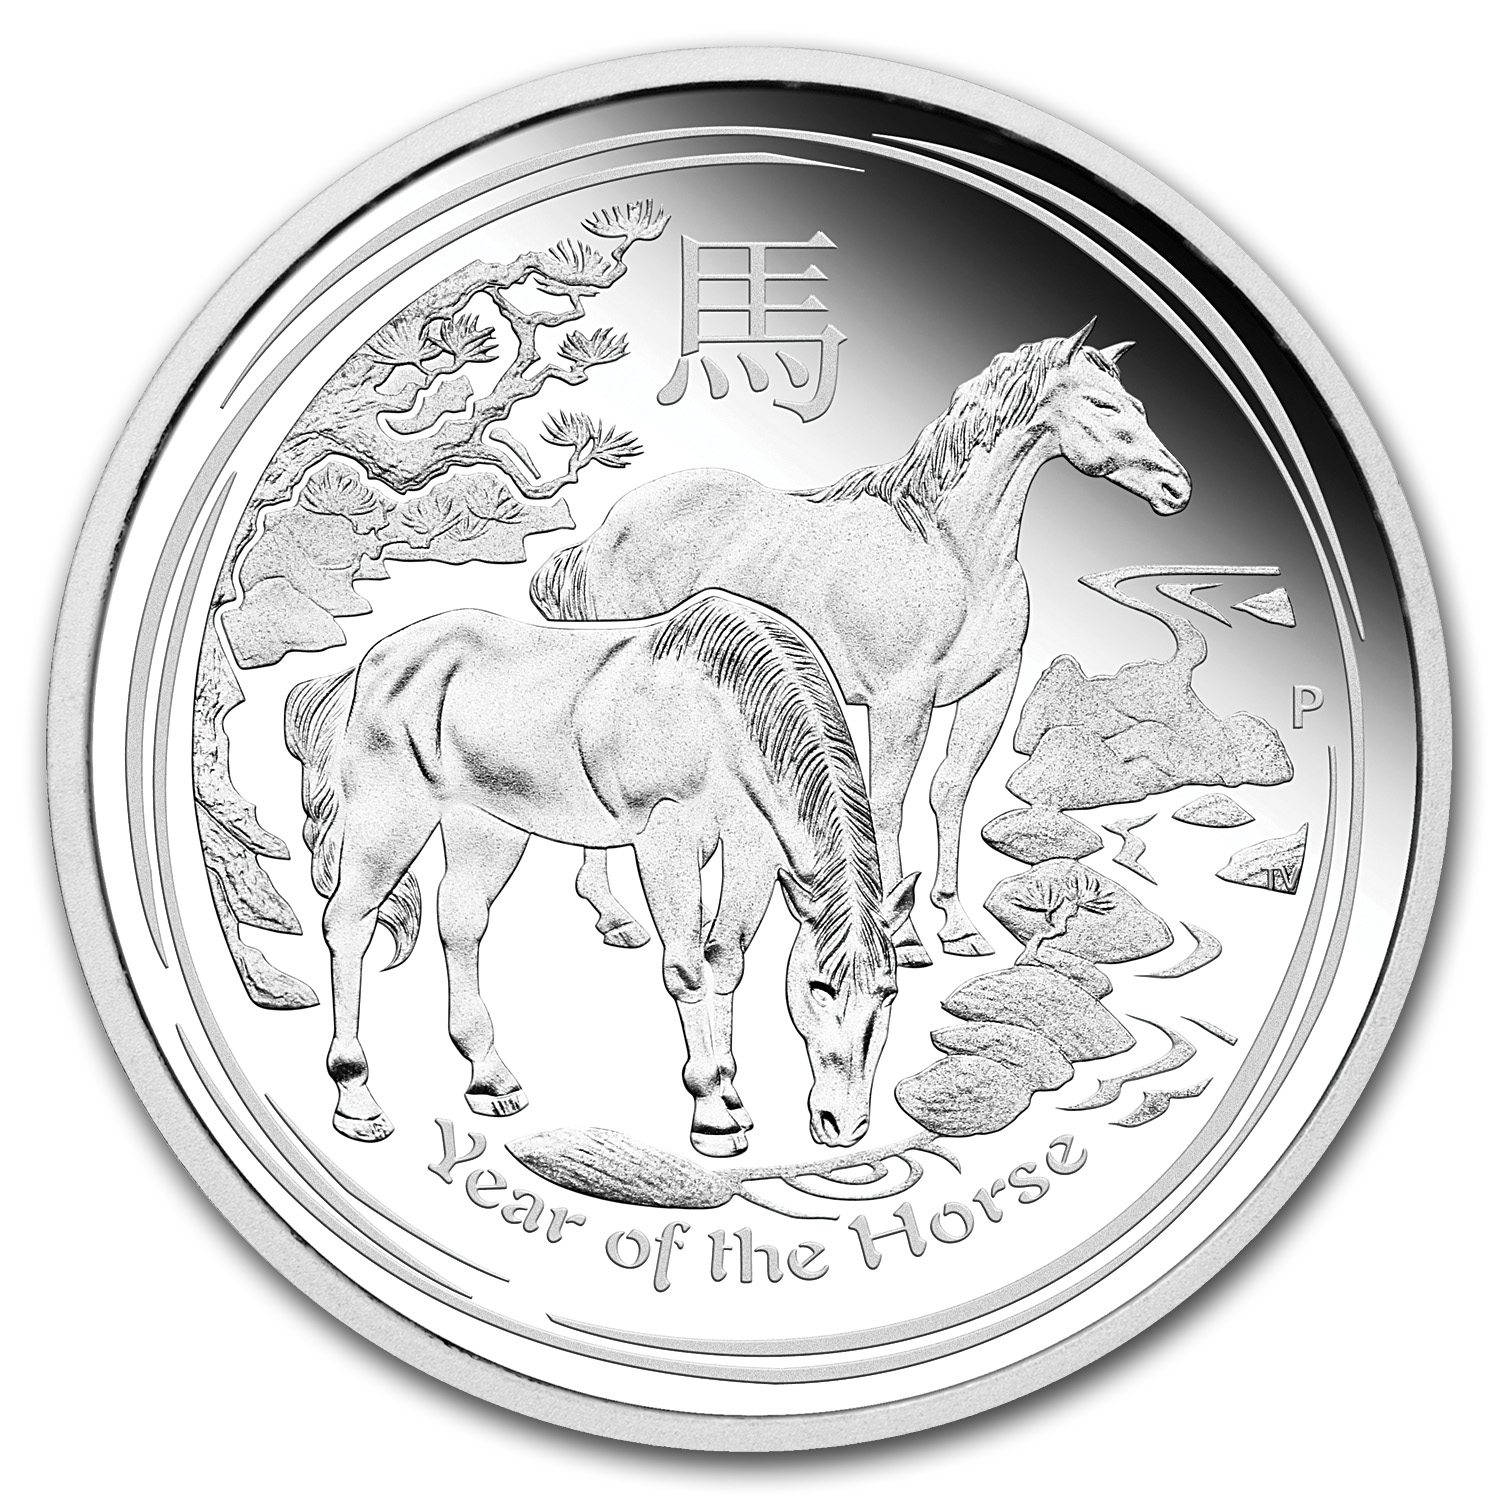 2014 Year of the Horse - 1 Kilo Proof Silver Coin (SII)